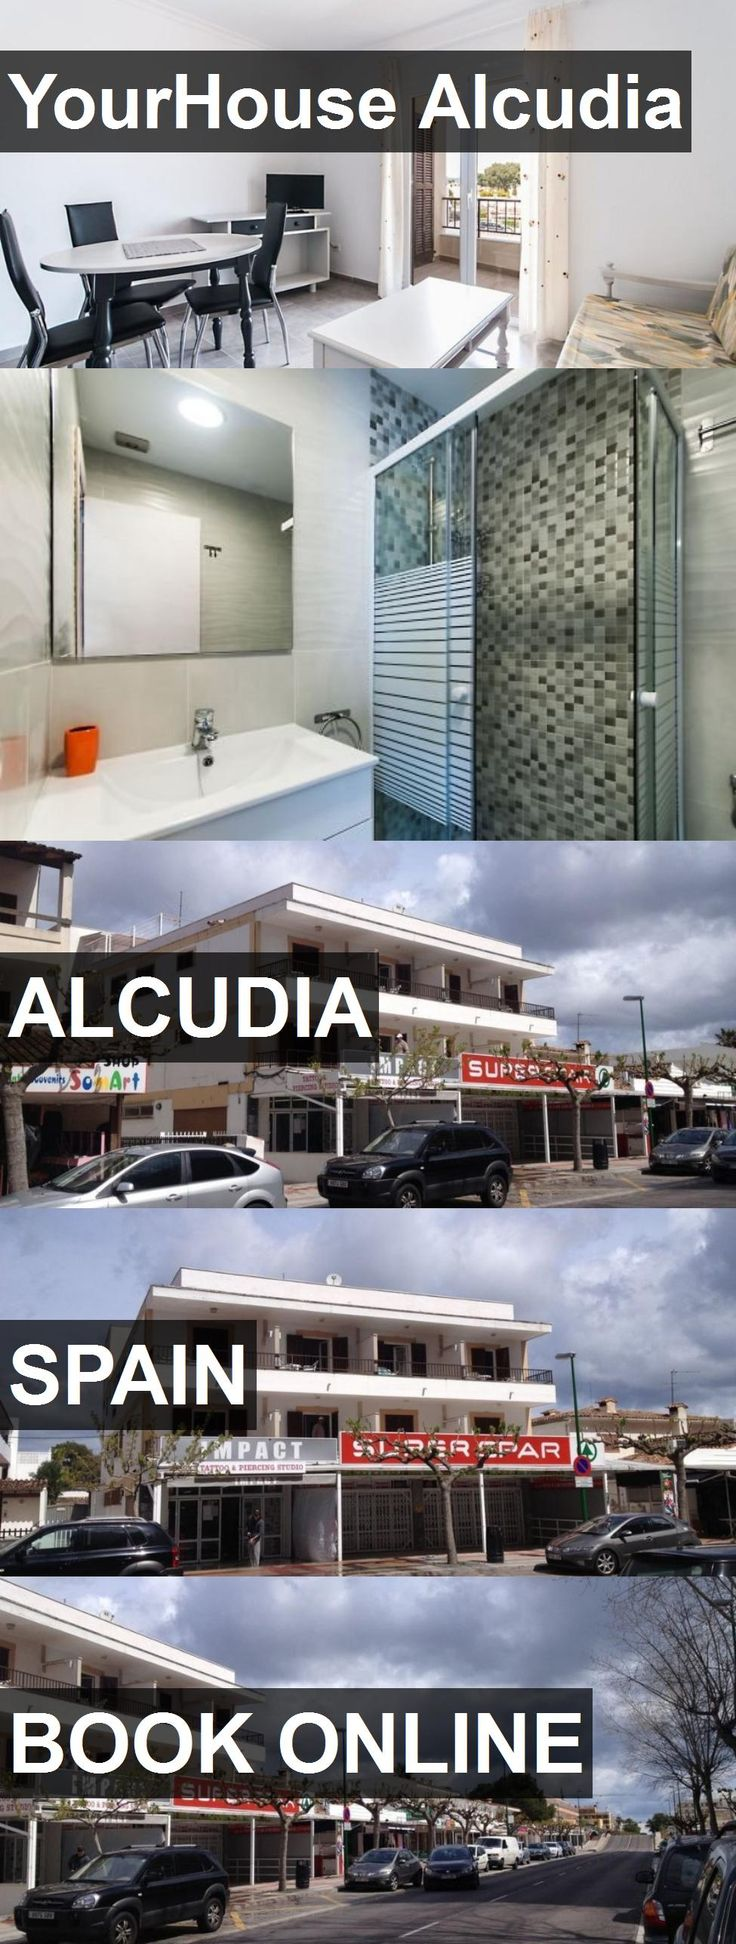 Hotel YourHouse Alcudia in Alcudia, Spain. For more information, photos, reviews and best prices please follow the link. #Spain #Alcudia #travel #vacation #hotel